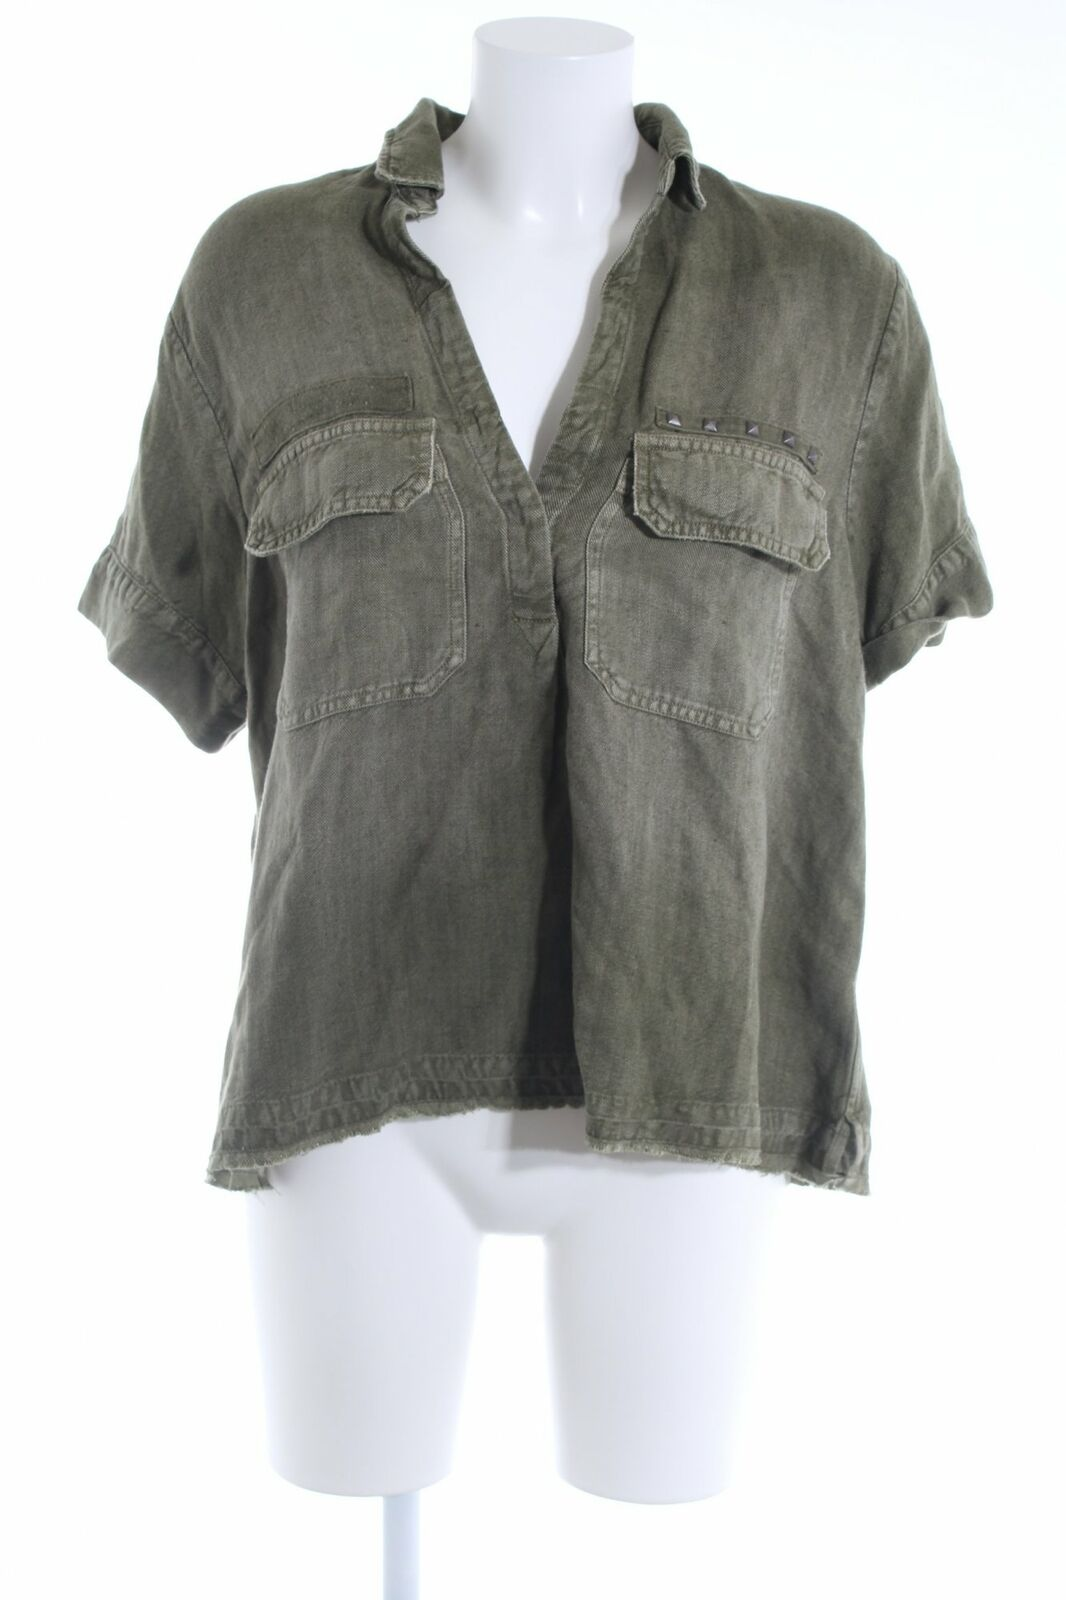 ADRIANO GoldSCHMIED Kurzarm-Blause olivgrün Casual-Look Damen Gr. DE 36 Blouse